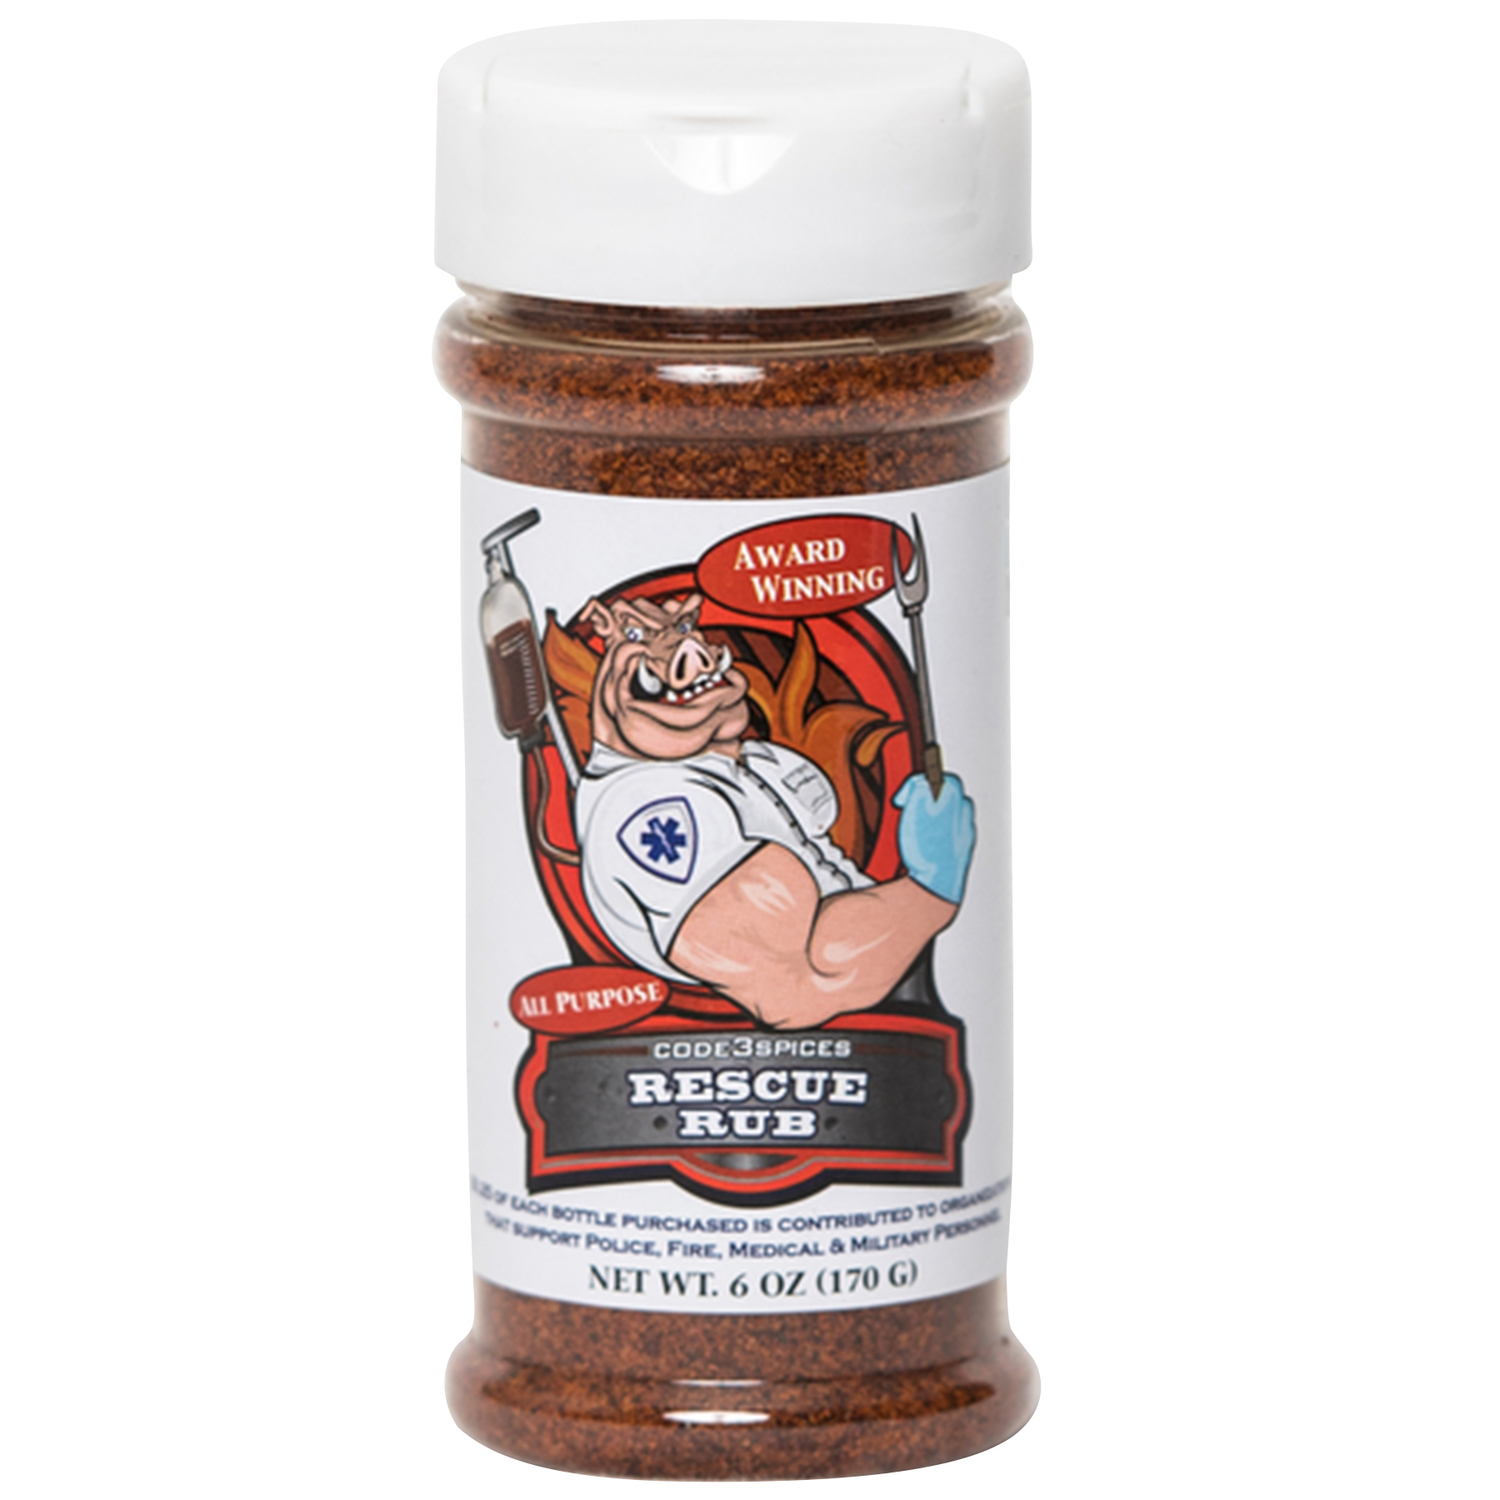 Code 3 Spices  Rescue Rub  All Purpose  BBQ Seasoning  6 oz.